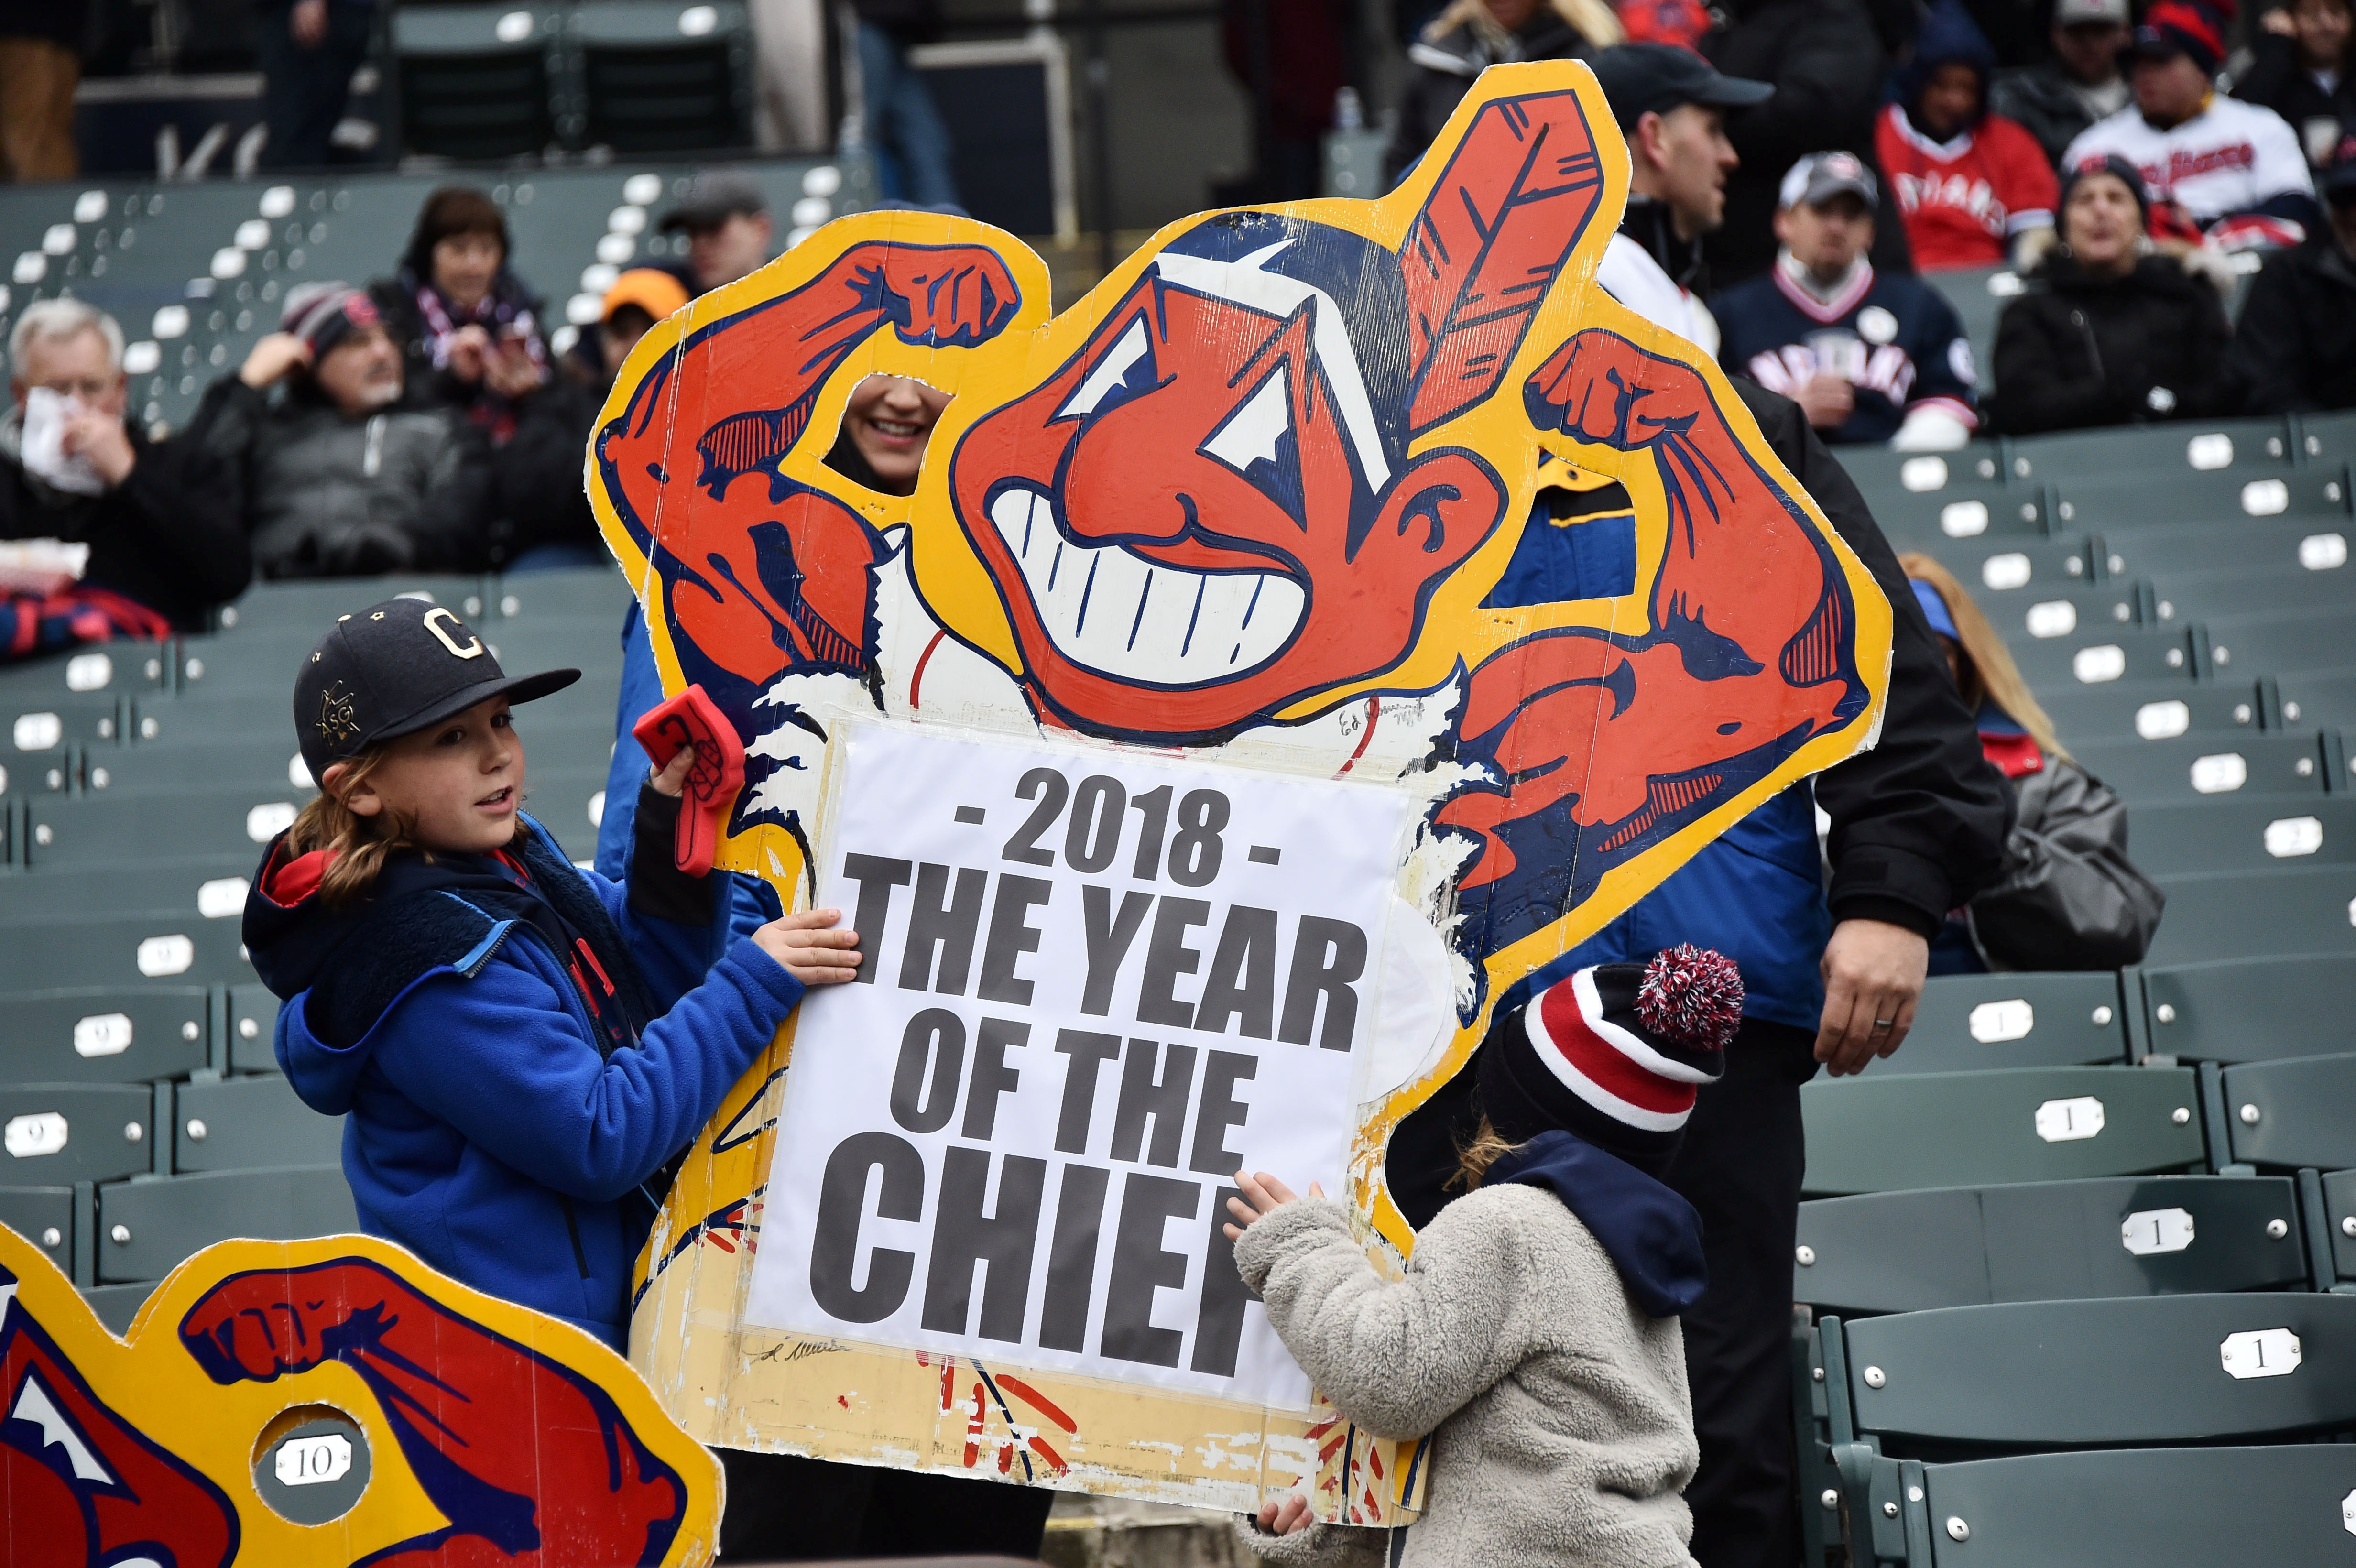 Apr 6, 2018; Cleveland, OH, USA; Fans hold a sign referencing the Cleveland Indians mascot Chief Wahoo logo before a game between the Cleveland Indians and the Kansas City Royals at Progressive Field. / Ken Blaze-USA TODAY Sports/File Photo